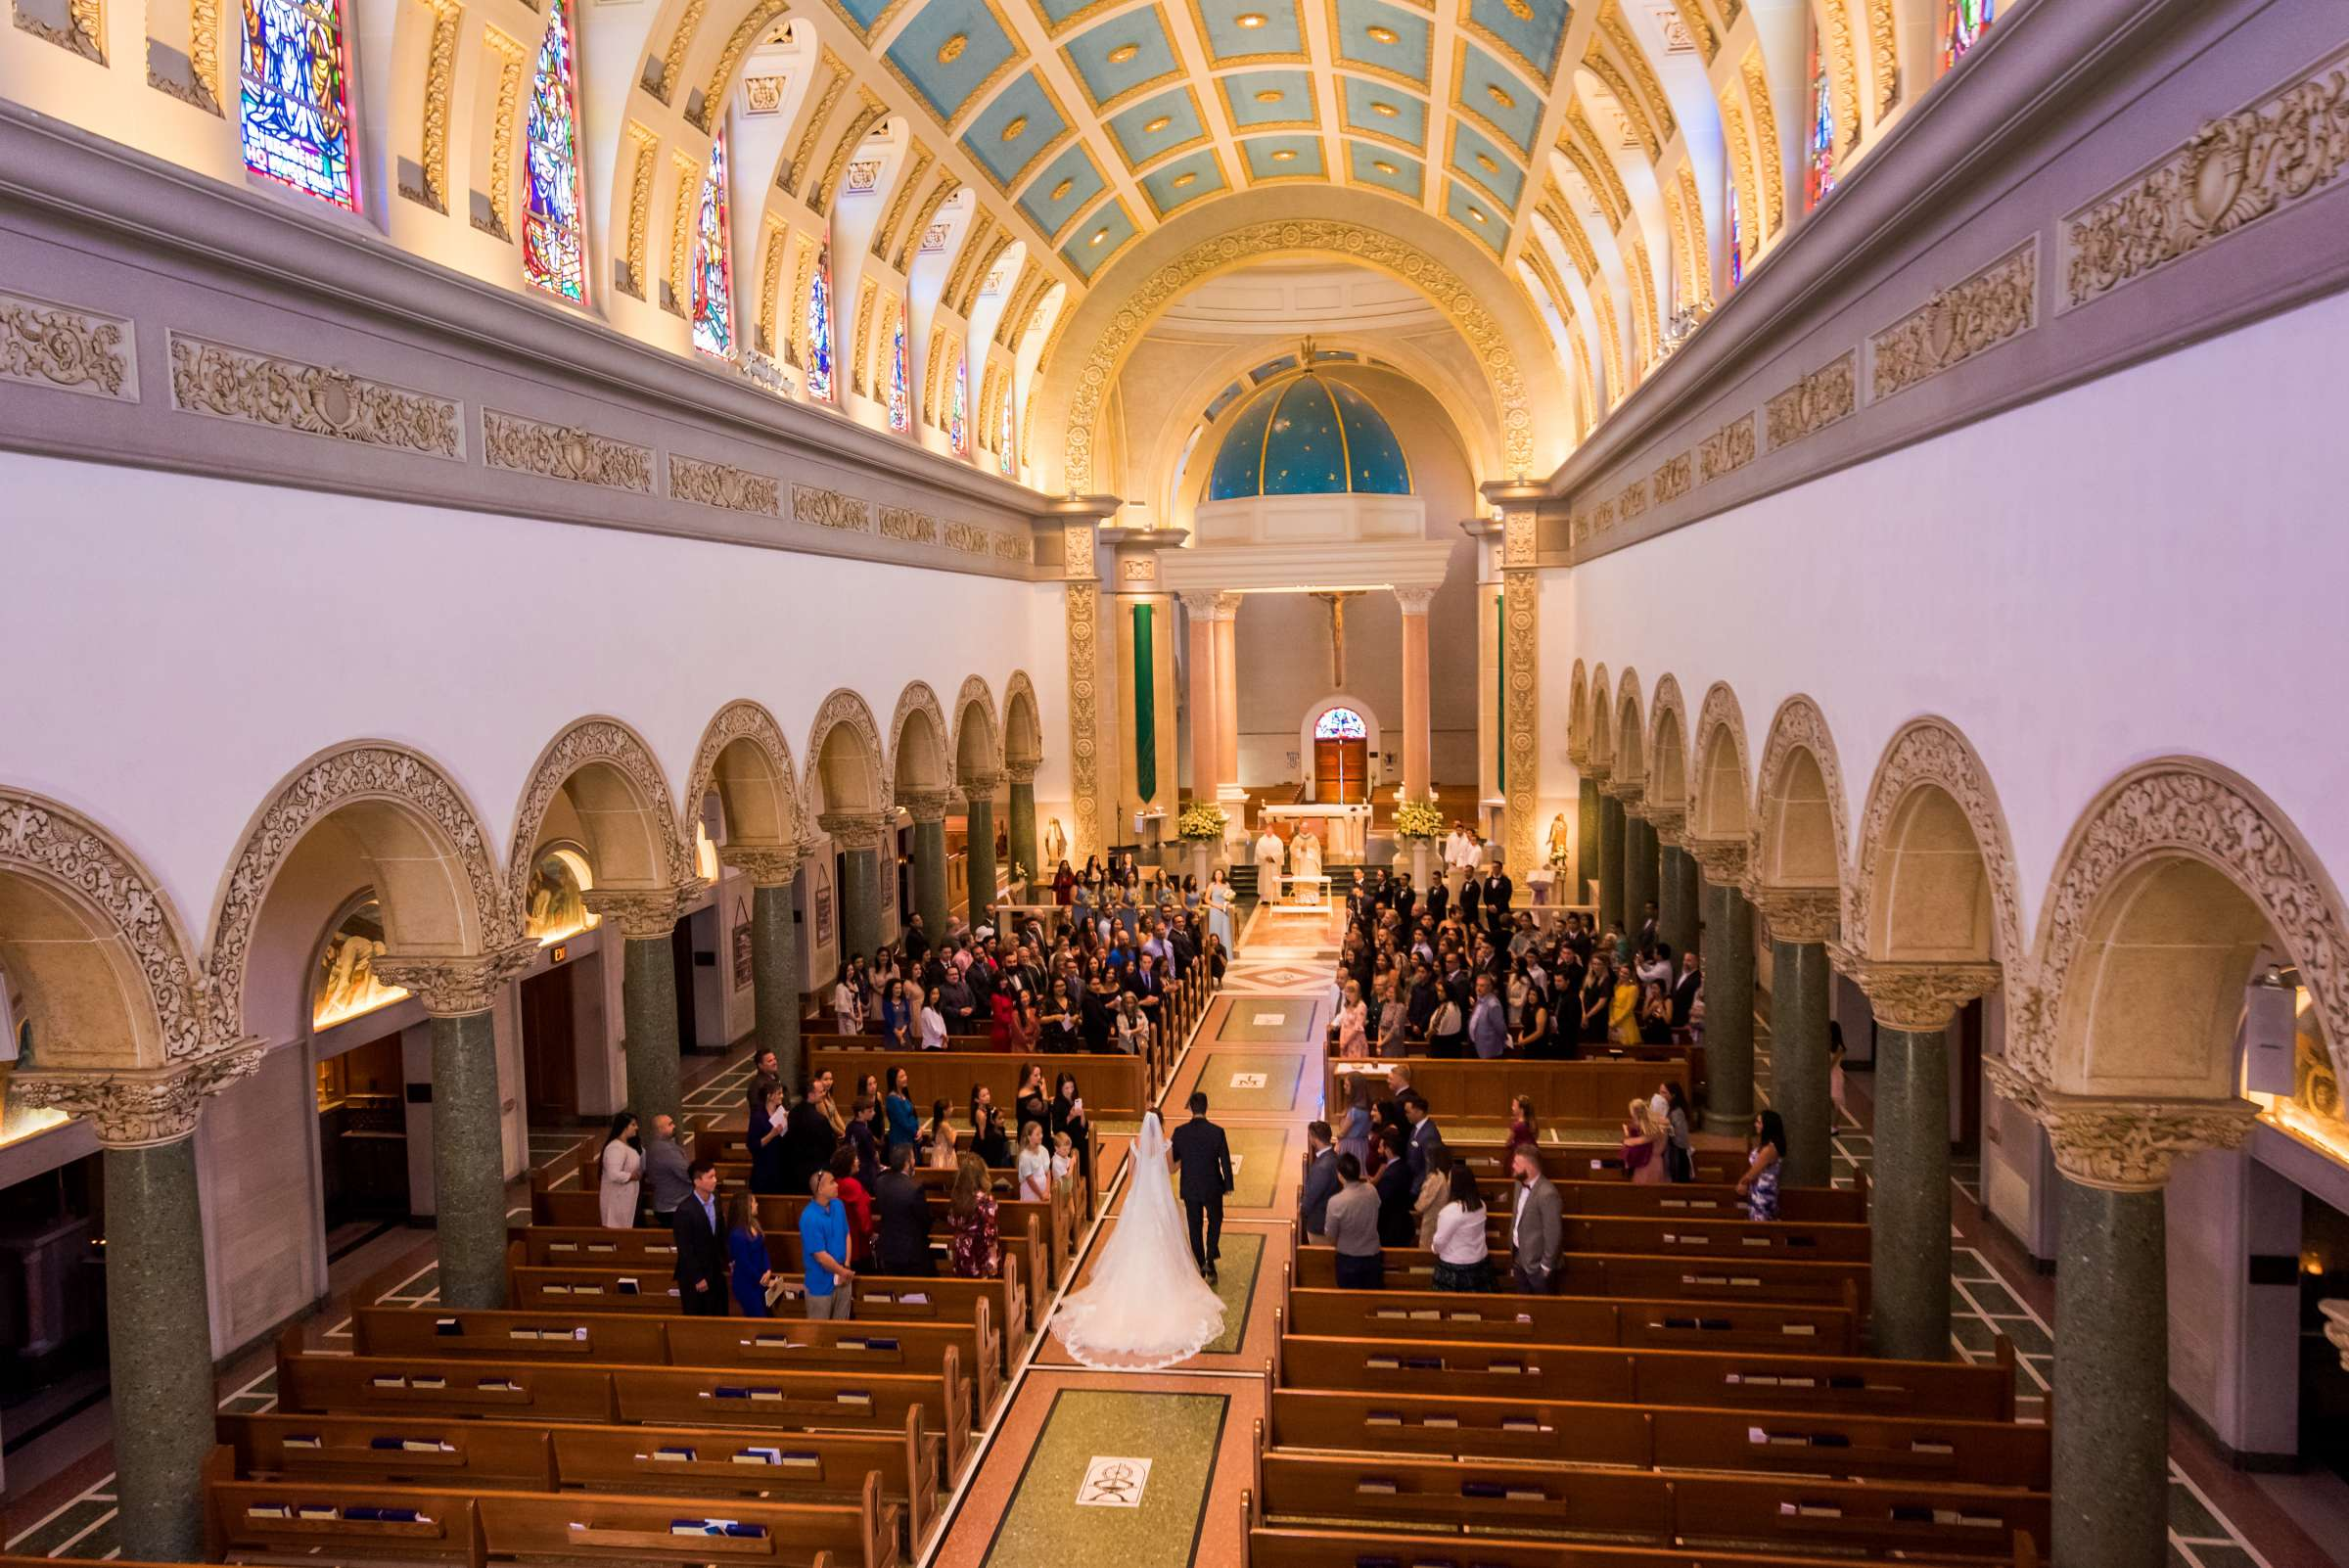 The Immaculata Wedding, Arianna and Jonah Wedding Photo #106 by True Photography